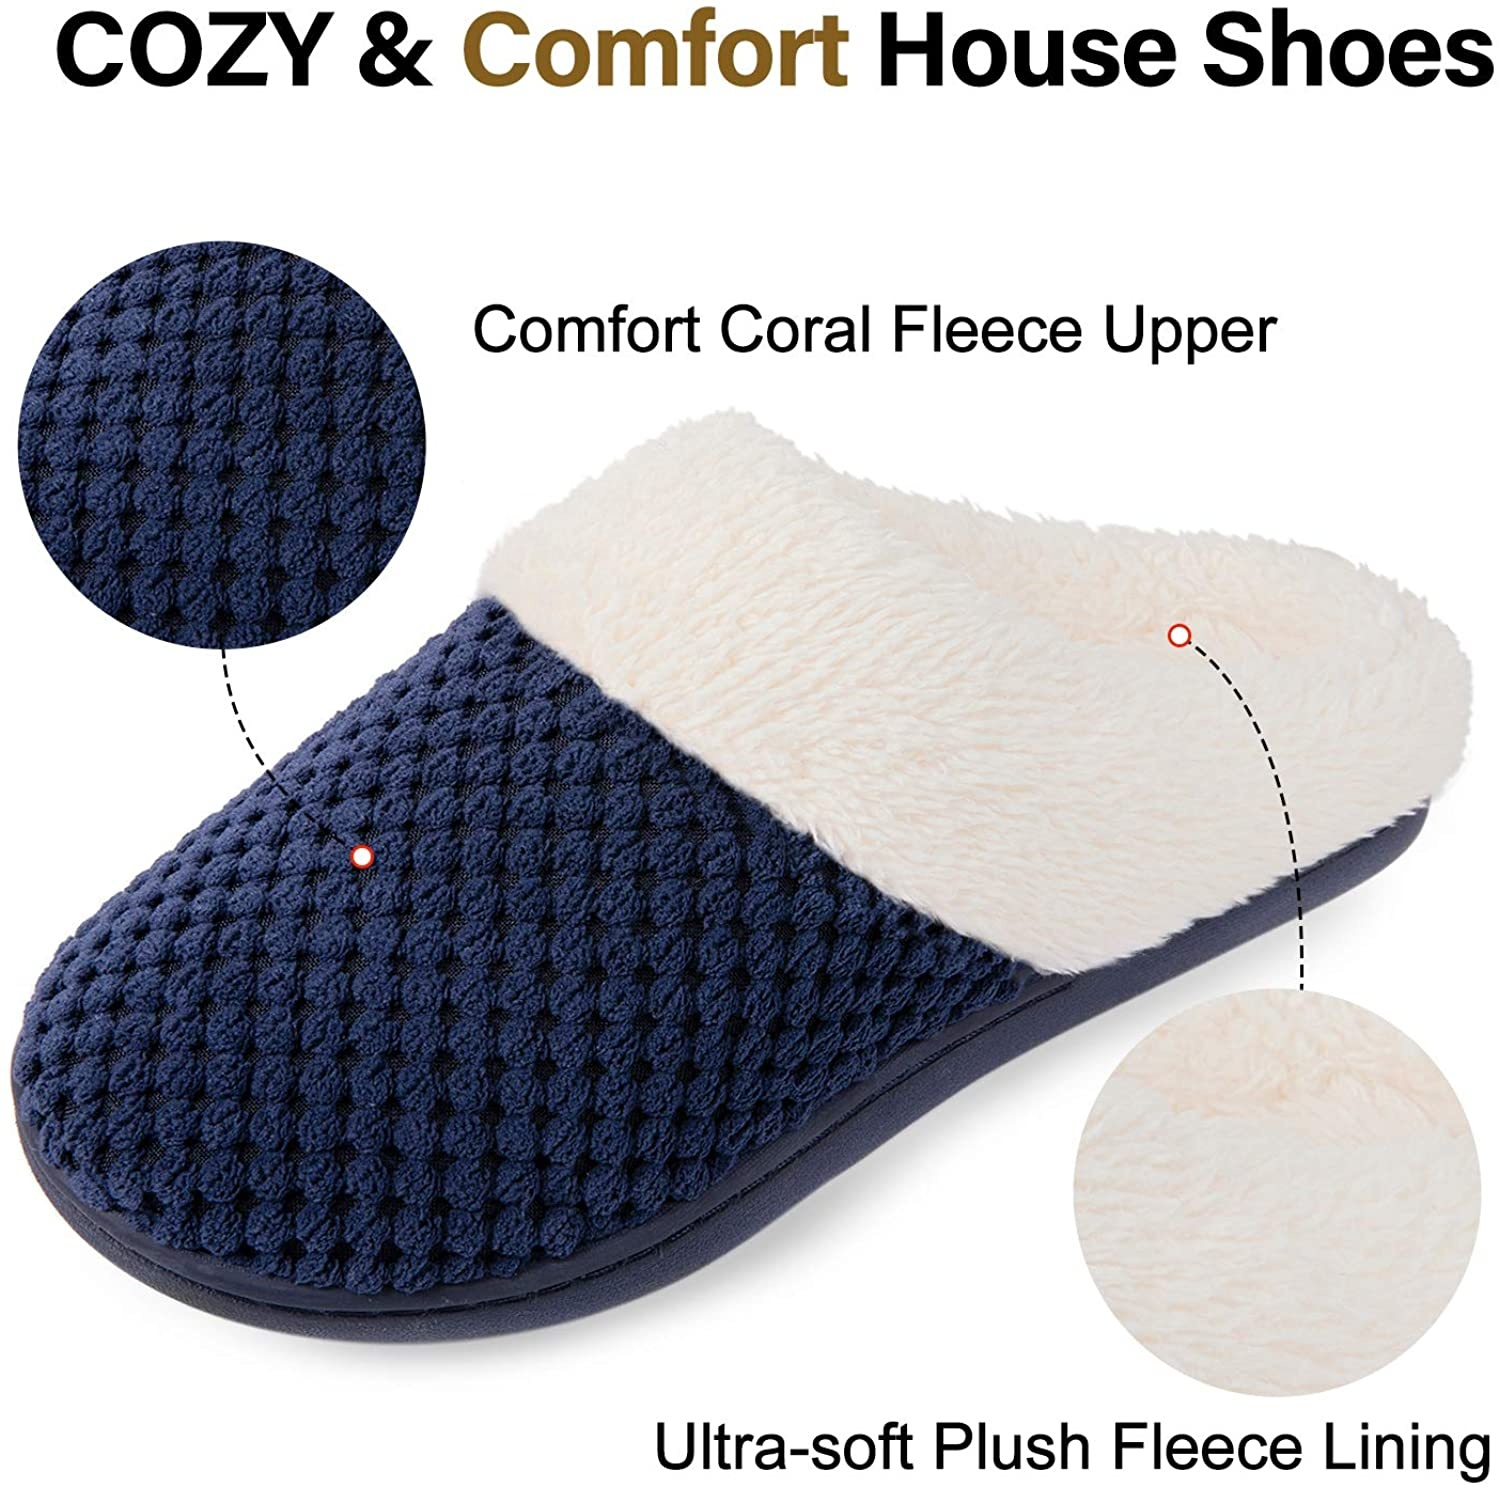 China Cheap price Kids Cork Sole Sandal - Prime Quality Women's Cozy&Comfort Coral Fleece Memory Foam Slippers Fuzzy Plush Lining Slip-on House Shoes for Indoor & Outdoor Use – BYRING detail pictures